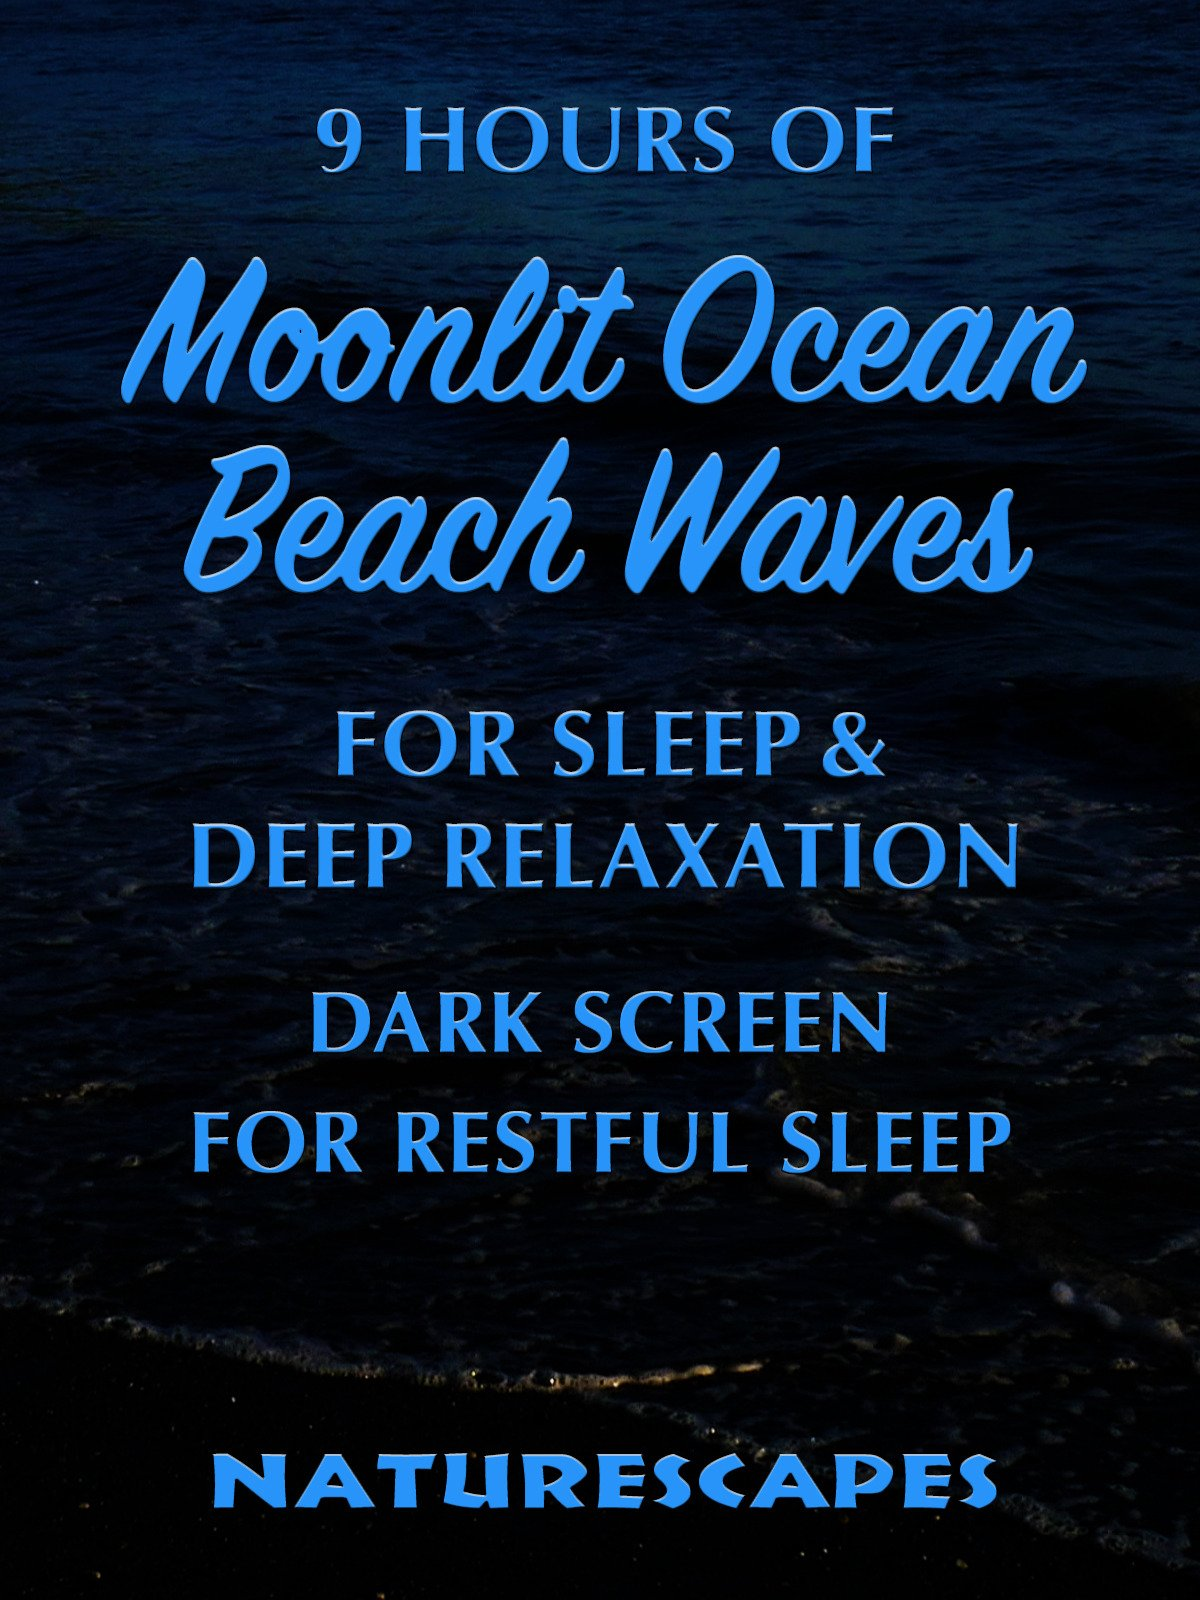 9 Hours of Moonlit Beach Waves for Sleep & Deep Relaxation Dark Screen for Restful Sleep